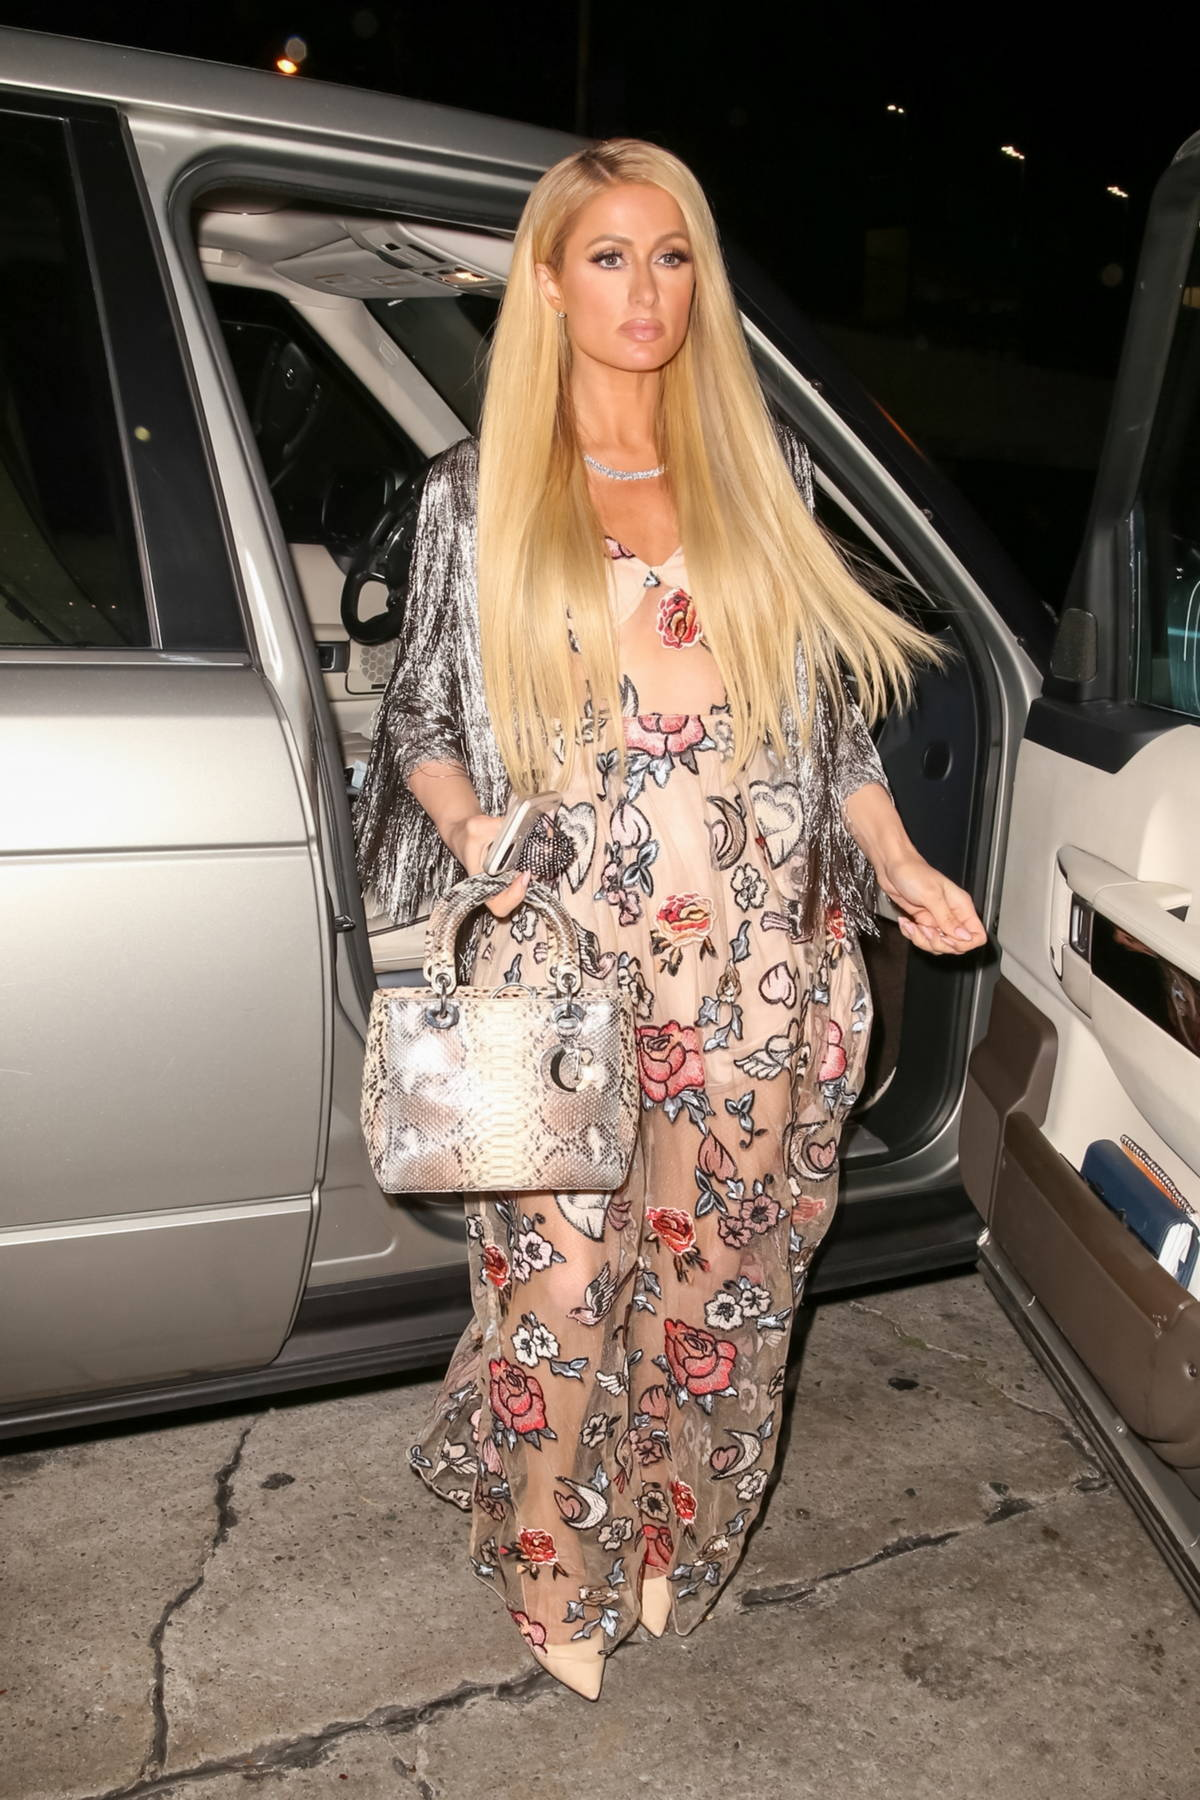 Paris Hilton looks stylish during a night out with fiancé Carter Reum in West Hollywood, California